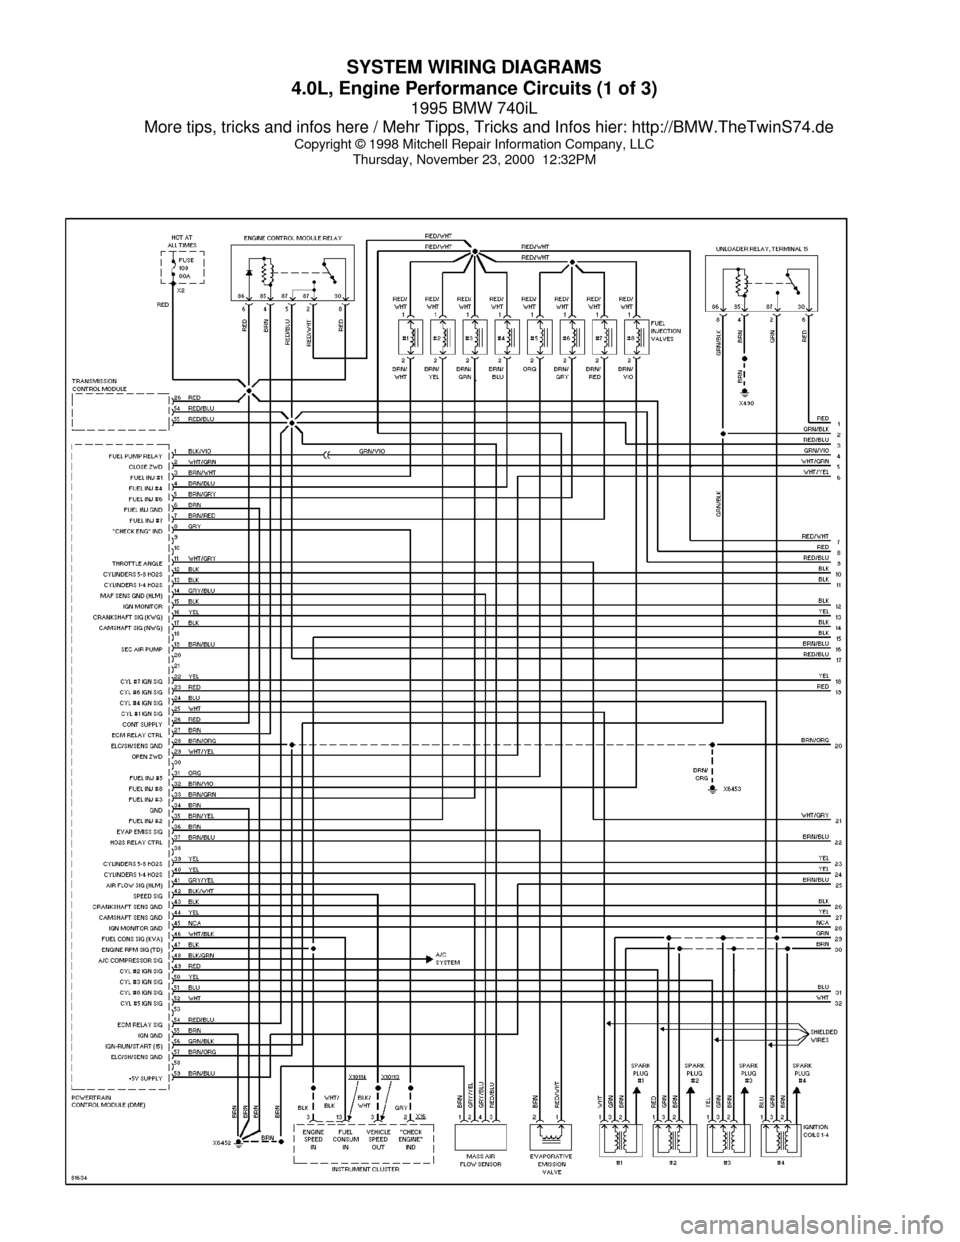 Bmw System Wiring Diagram Manual Of Wds Download Free 1998 740il 29 Images